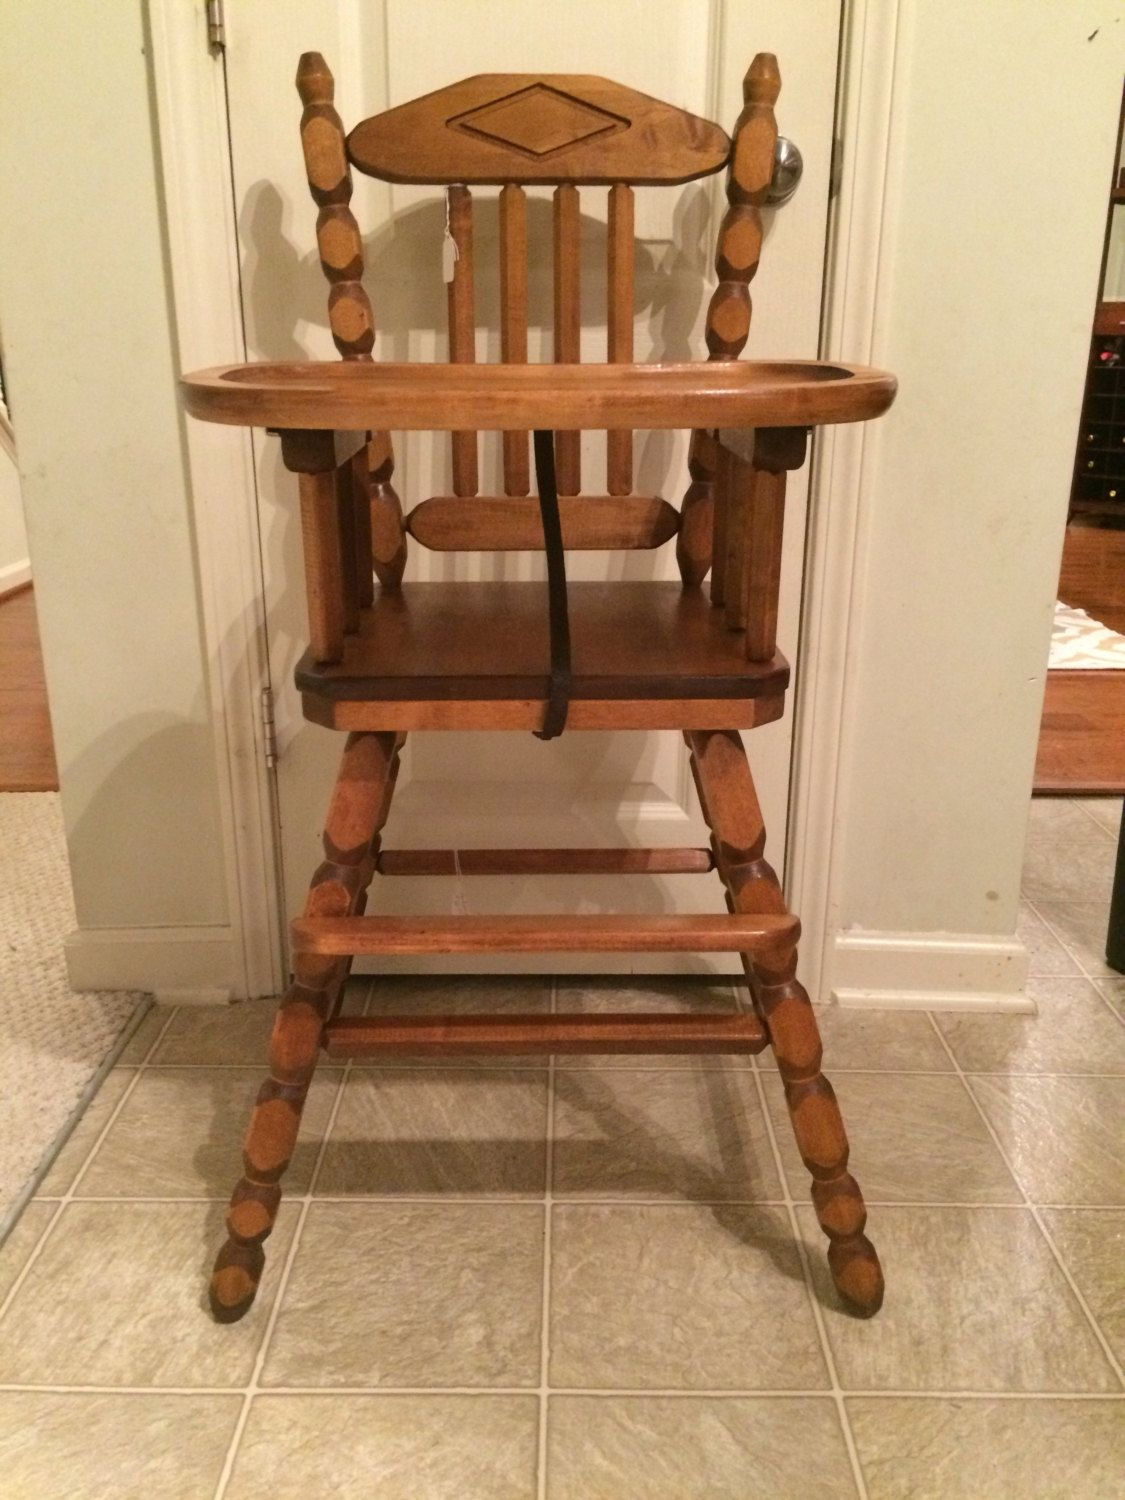 Amish wooden high chairs - Vintage Wooden High Chair Jenny Lind Antique High Chair Vintage High Chair Vintage Highchair Antique Wood Highchair Wooden Highchair